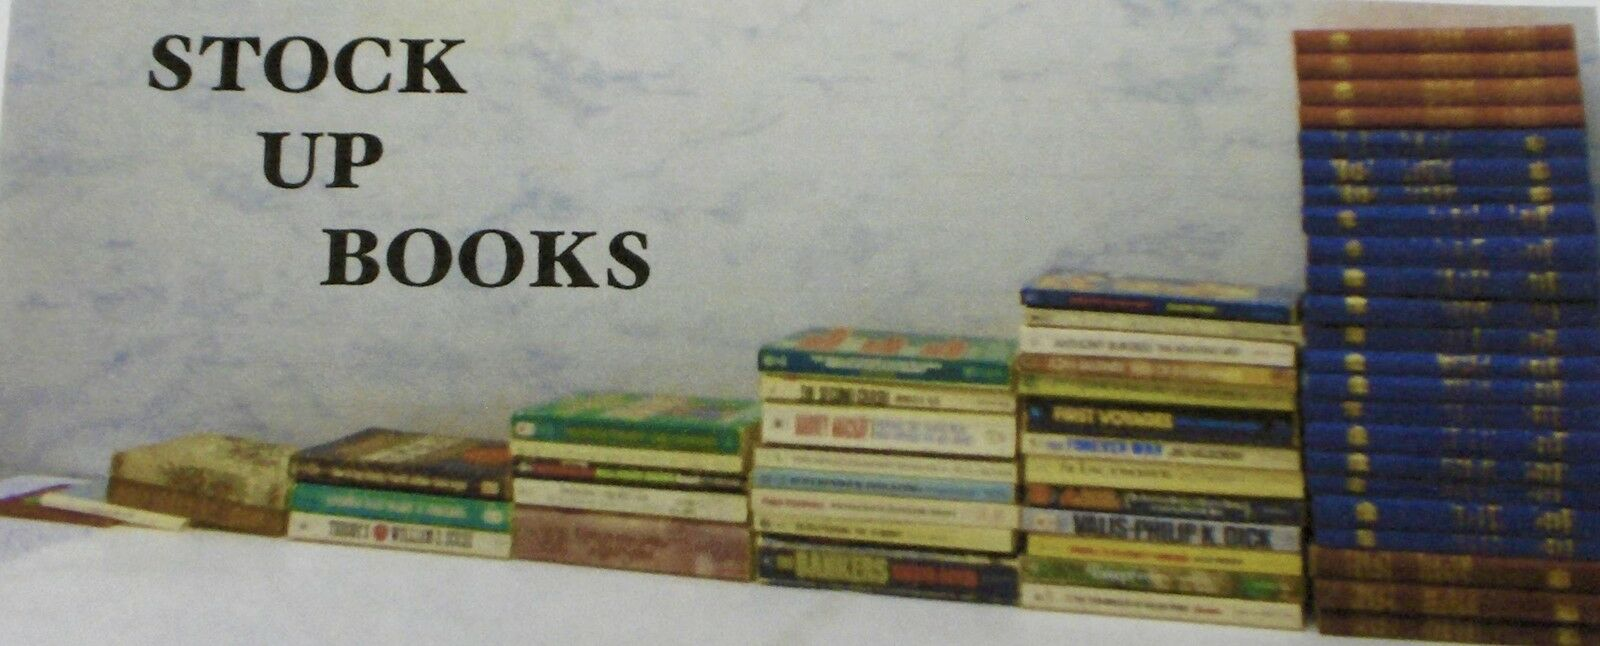 stock-up-books